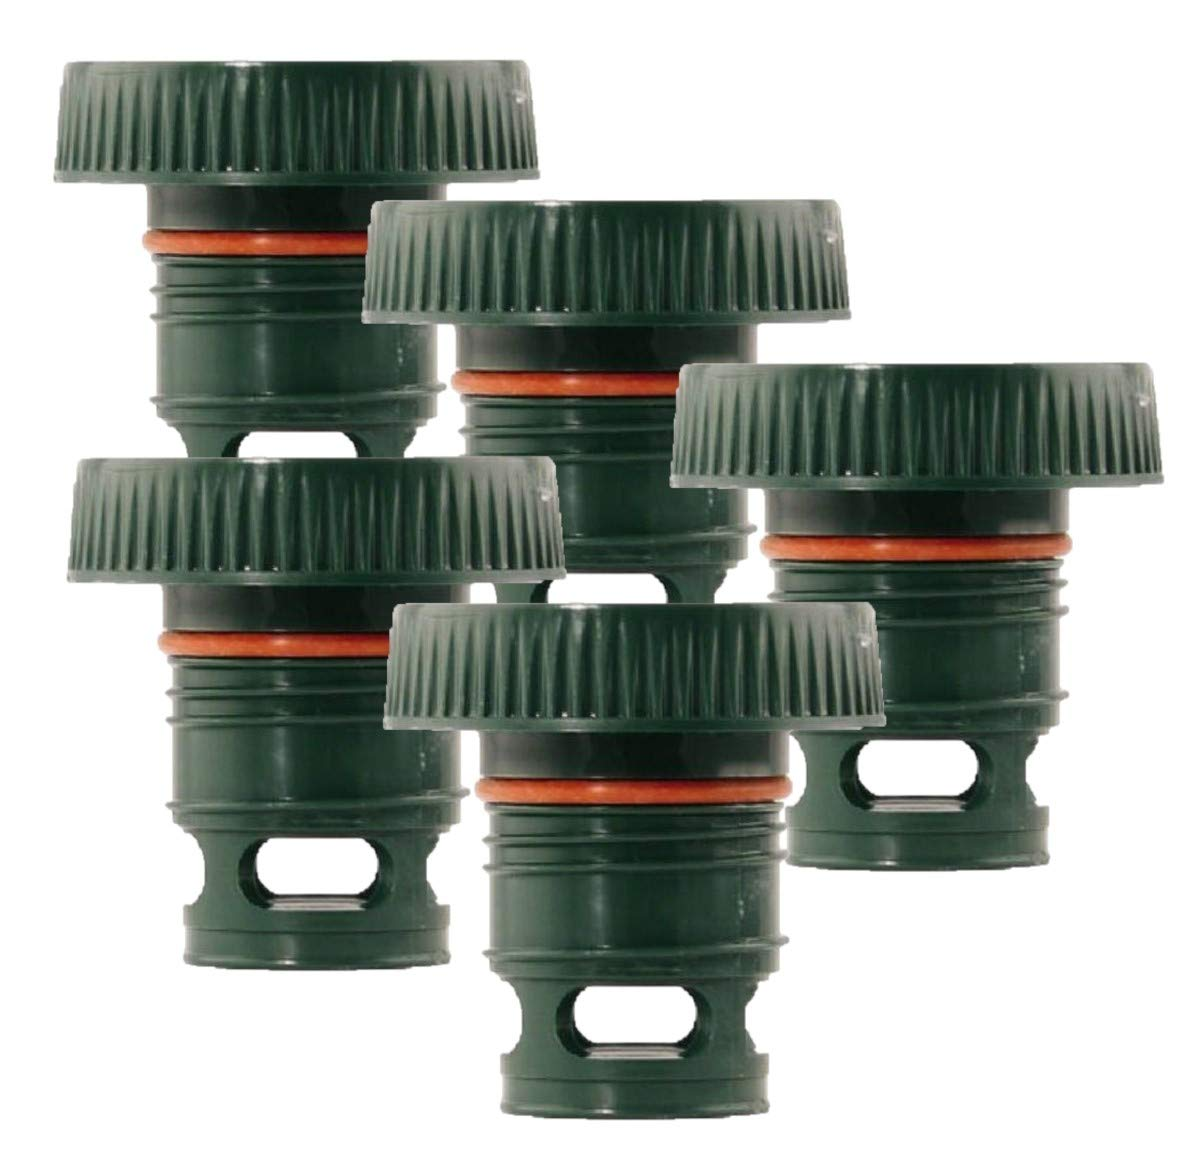 Stanley Replacement Stopper for stopper #13 pre-2002 production, Pack of 5 by Stanley